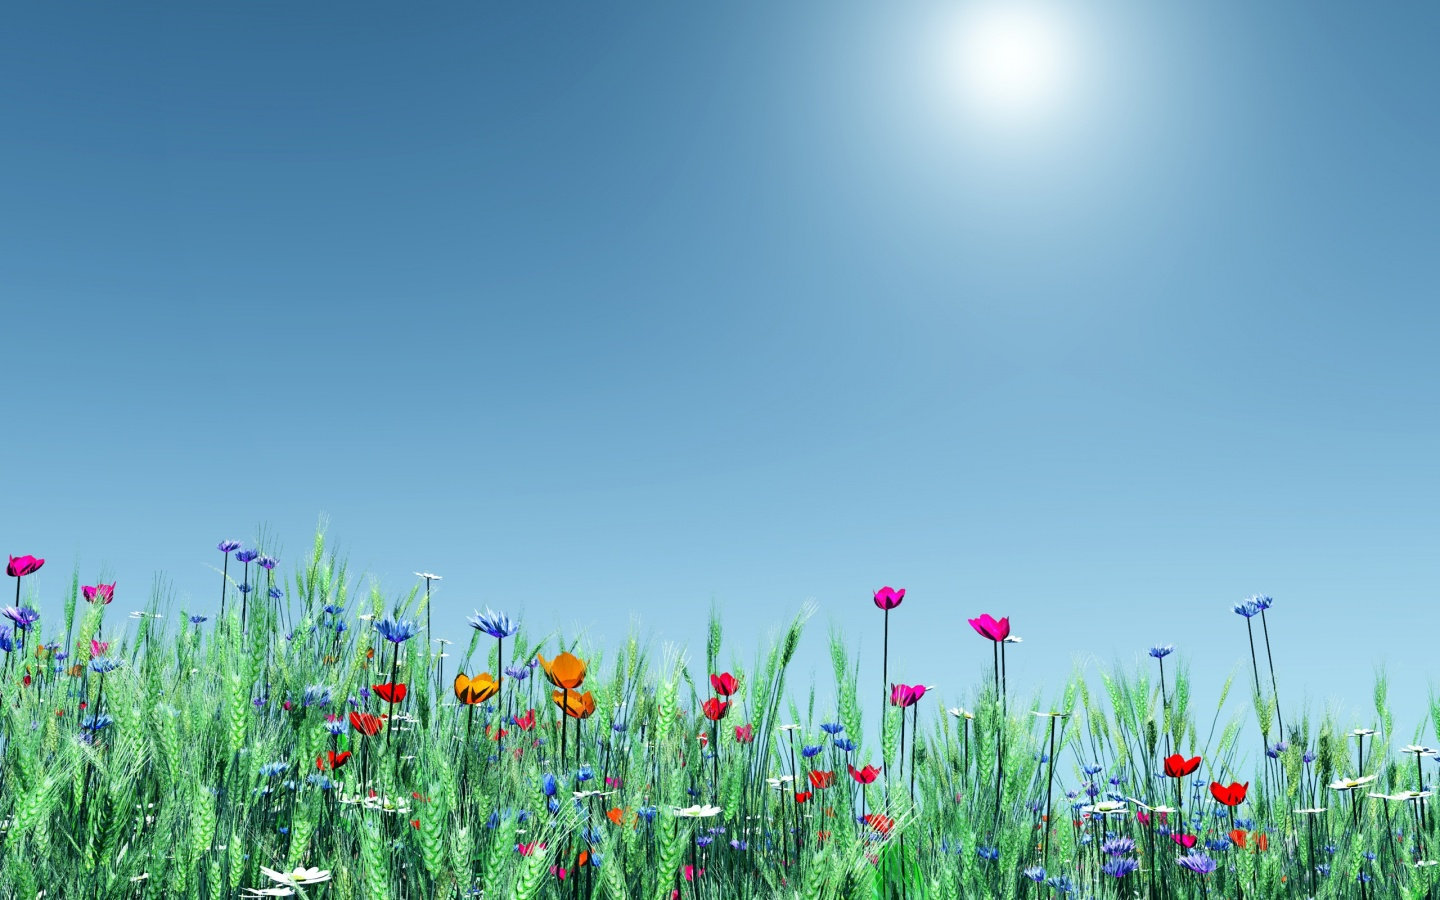 Good Wallpaper Mac Spring - spring-flowers_wallpapers_23570_1440x900  Perfect Image Reference_274156.jpg